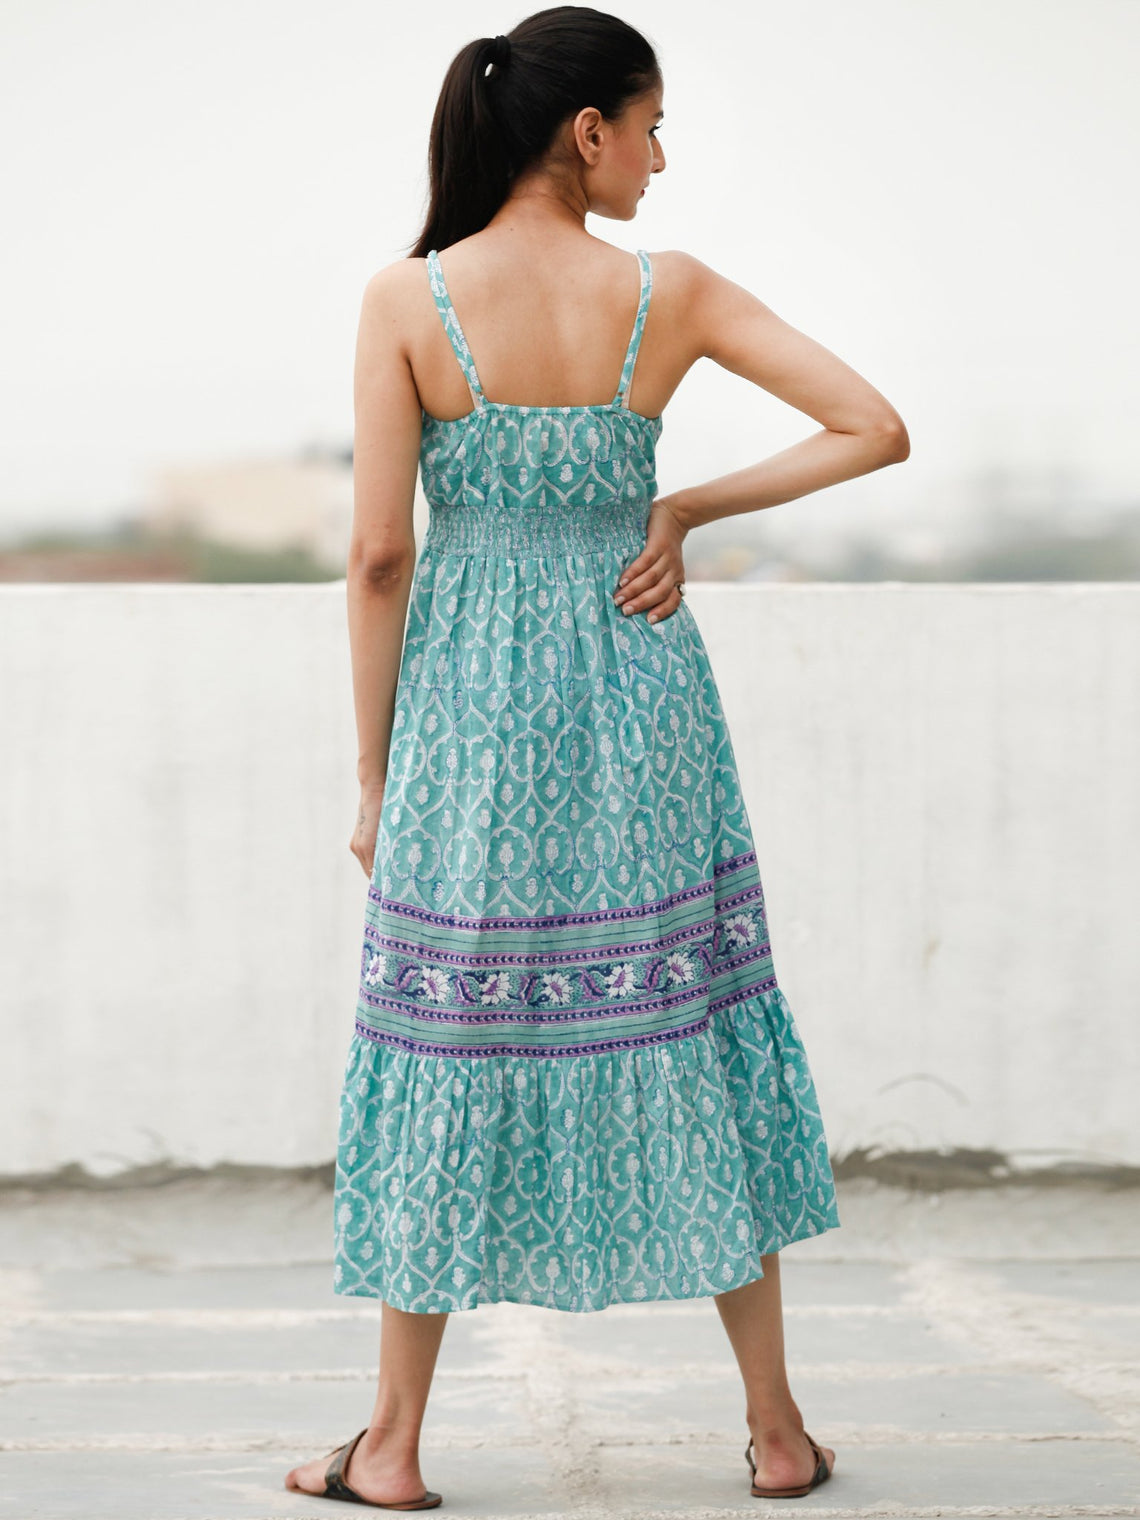 Spaghetti Style  - Block Printed Cotton Long Dress  - D370F1913